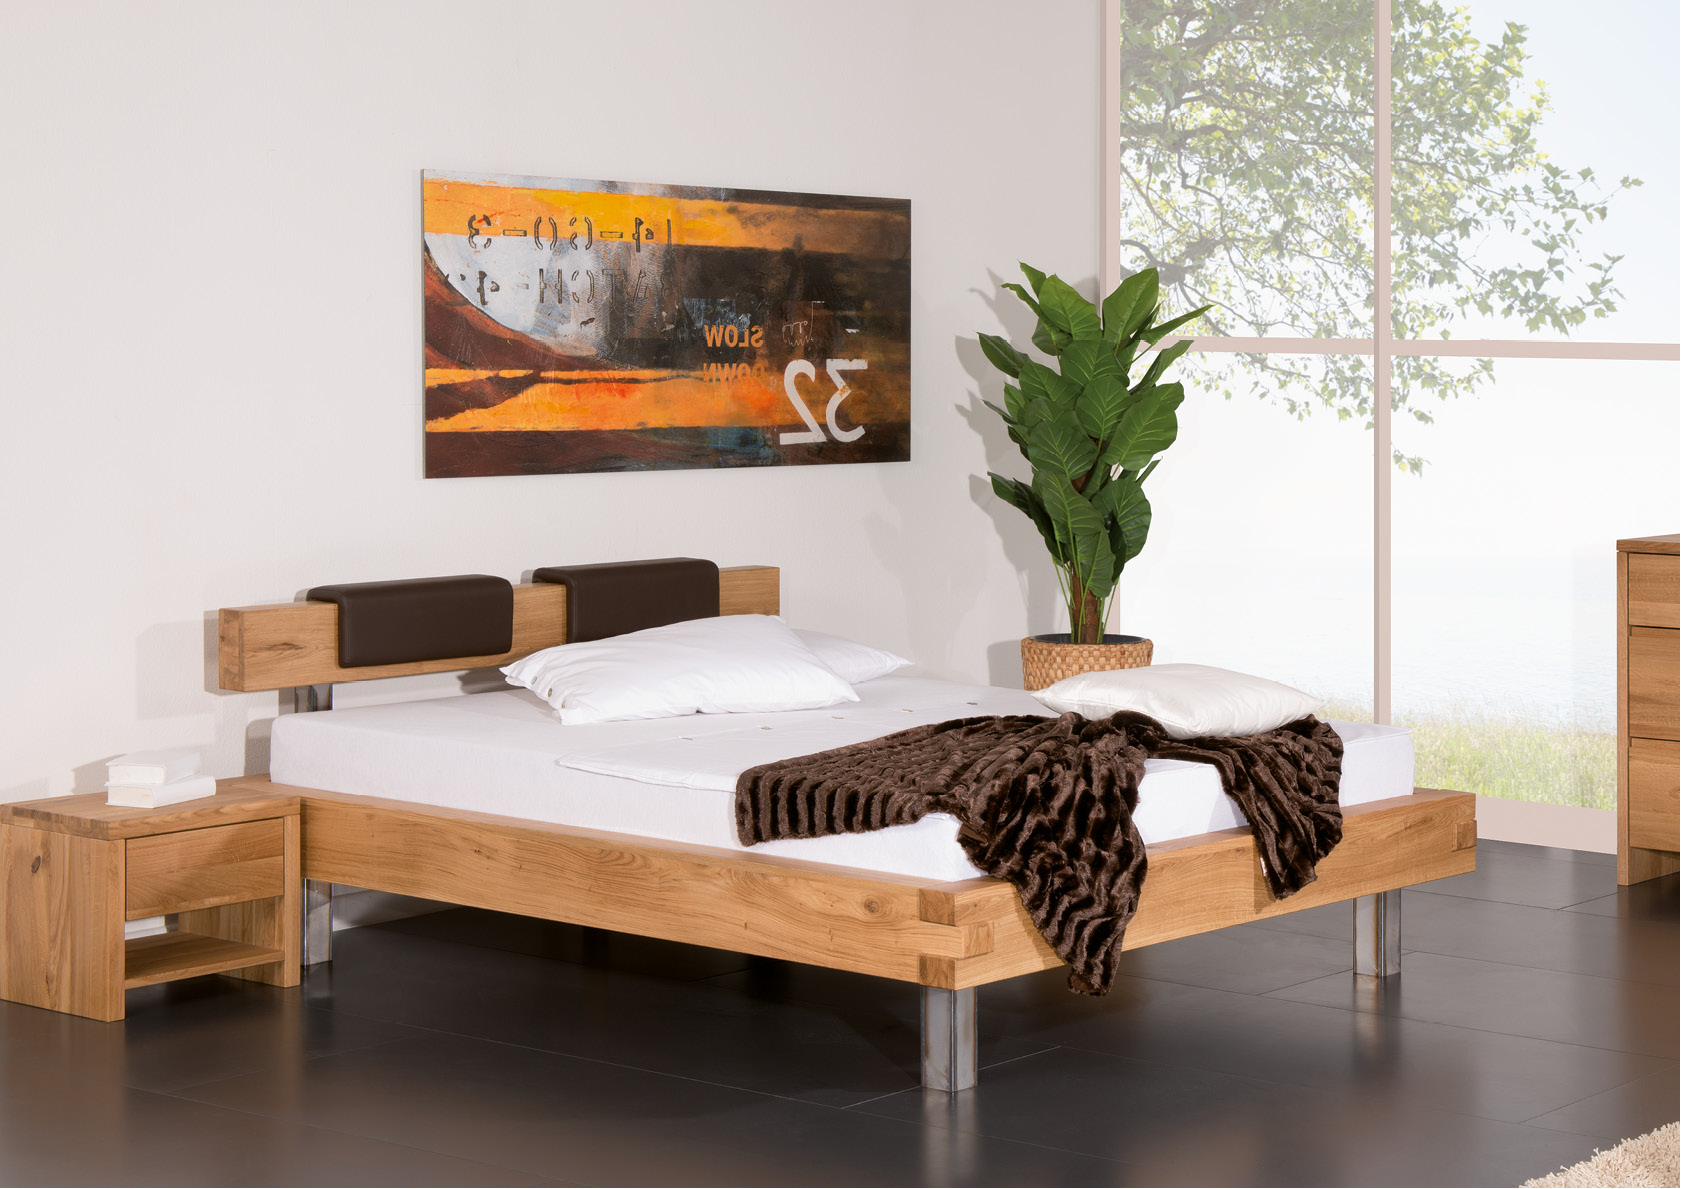 balkenbett pino betten thoba handels gmbh. Black Bedroom Furniture Sets. Home Design Ideas